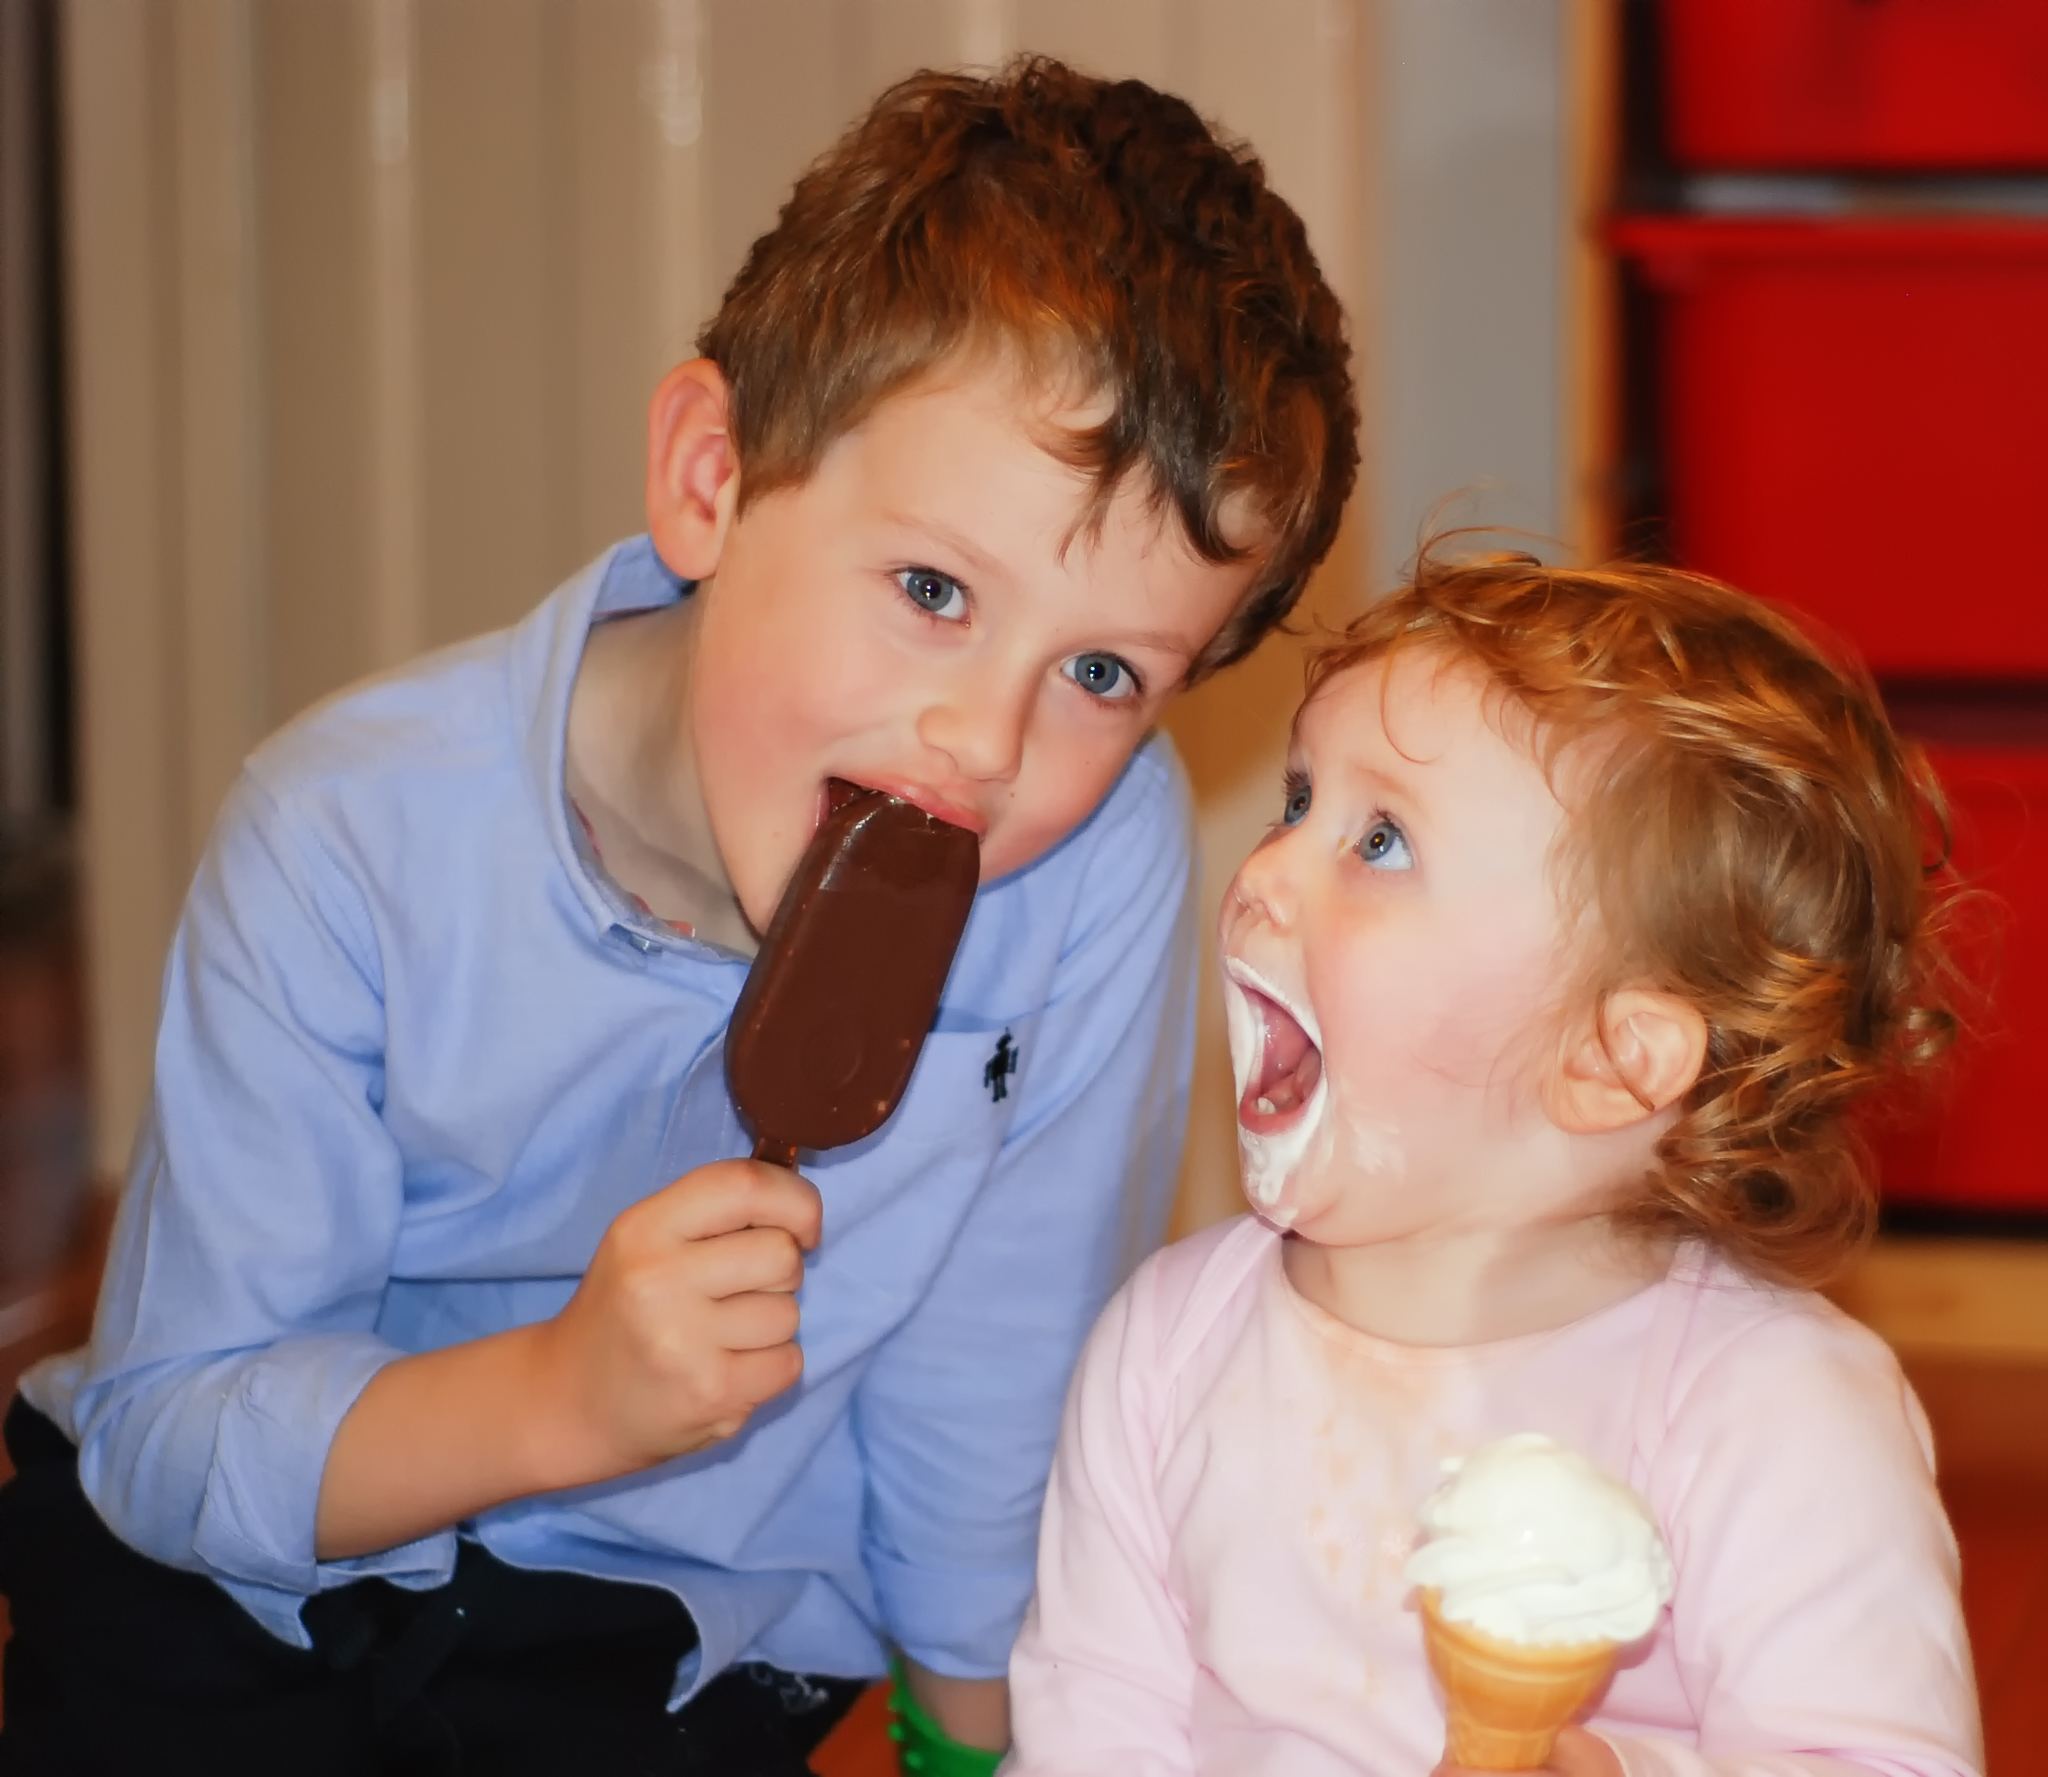 20101016_eating-ice-creams_20101016_4615_01